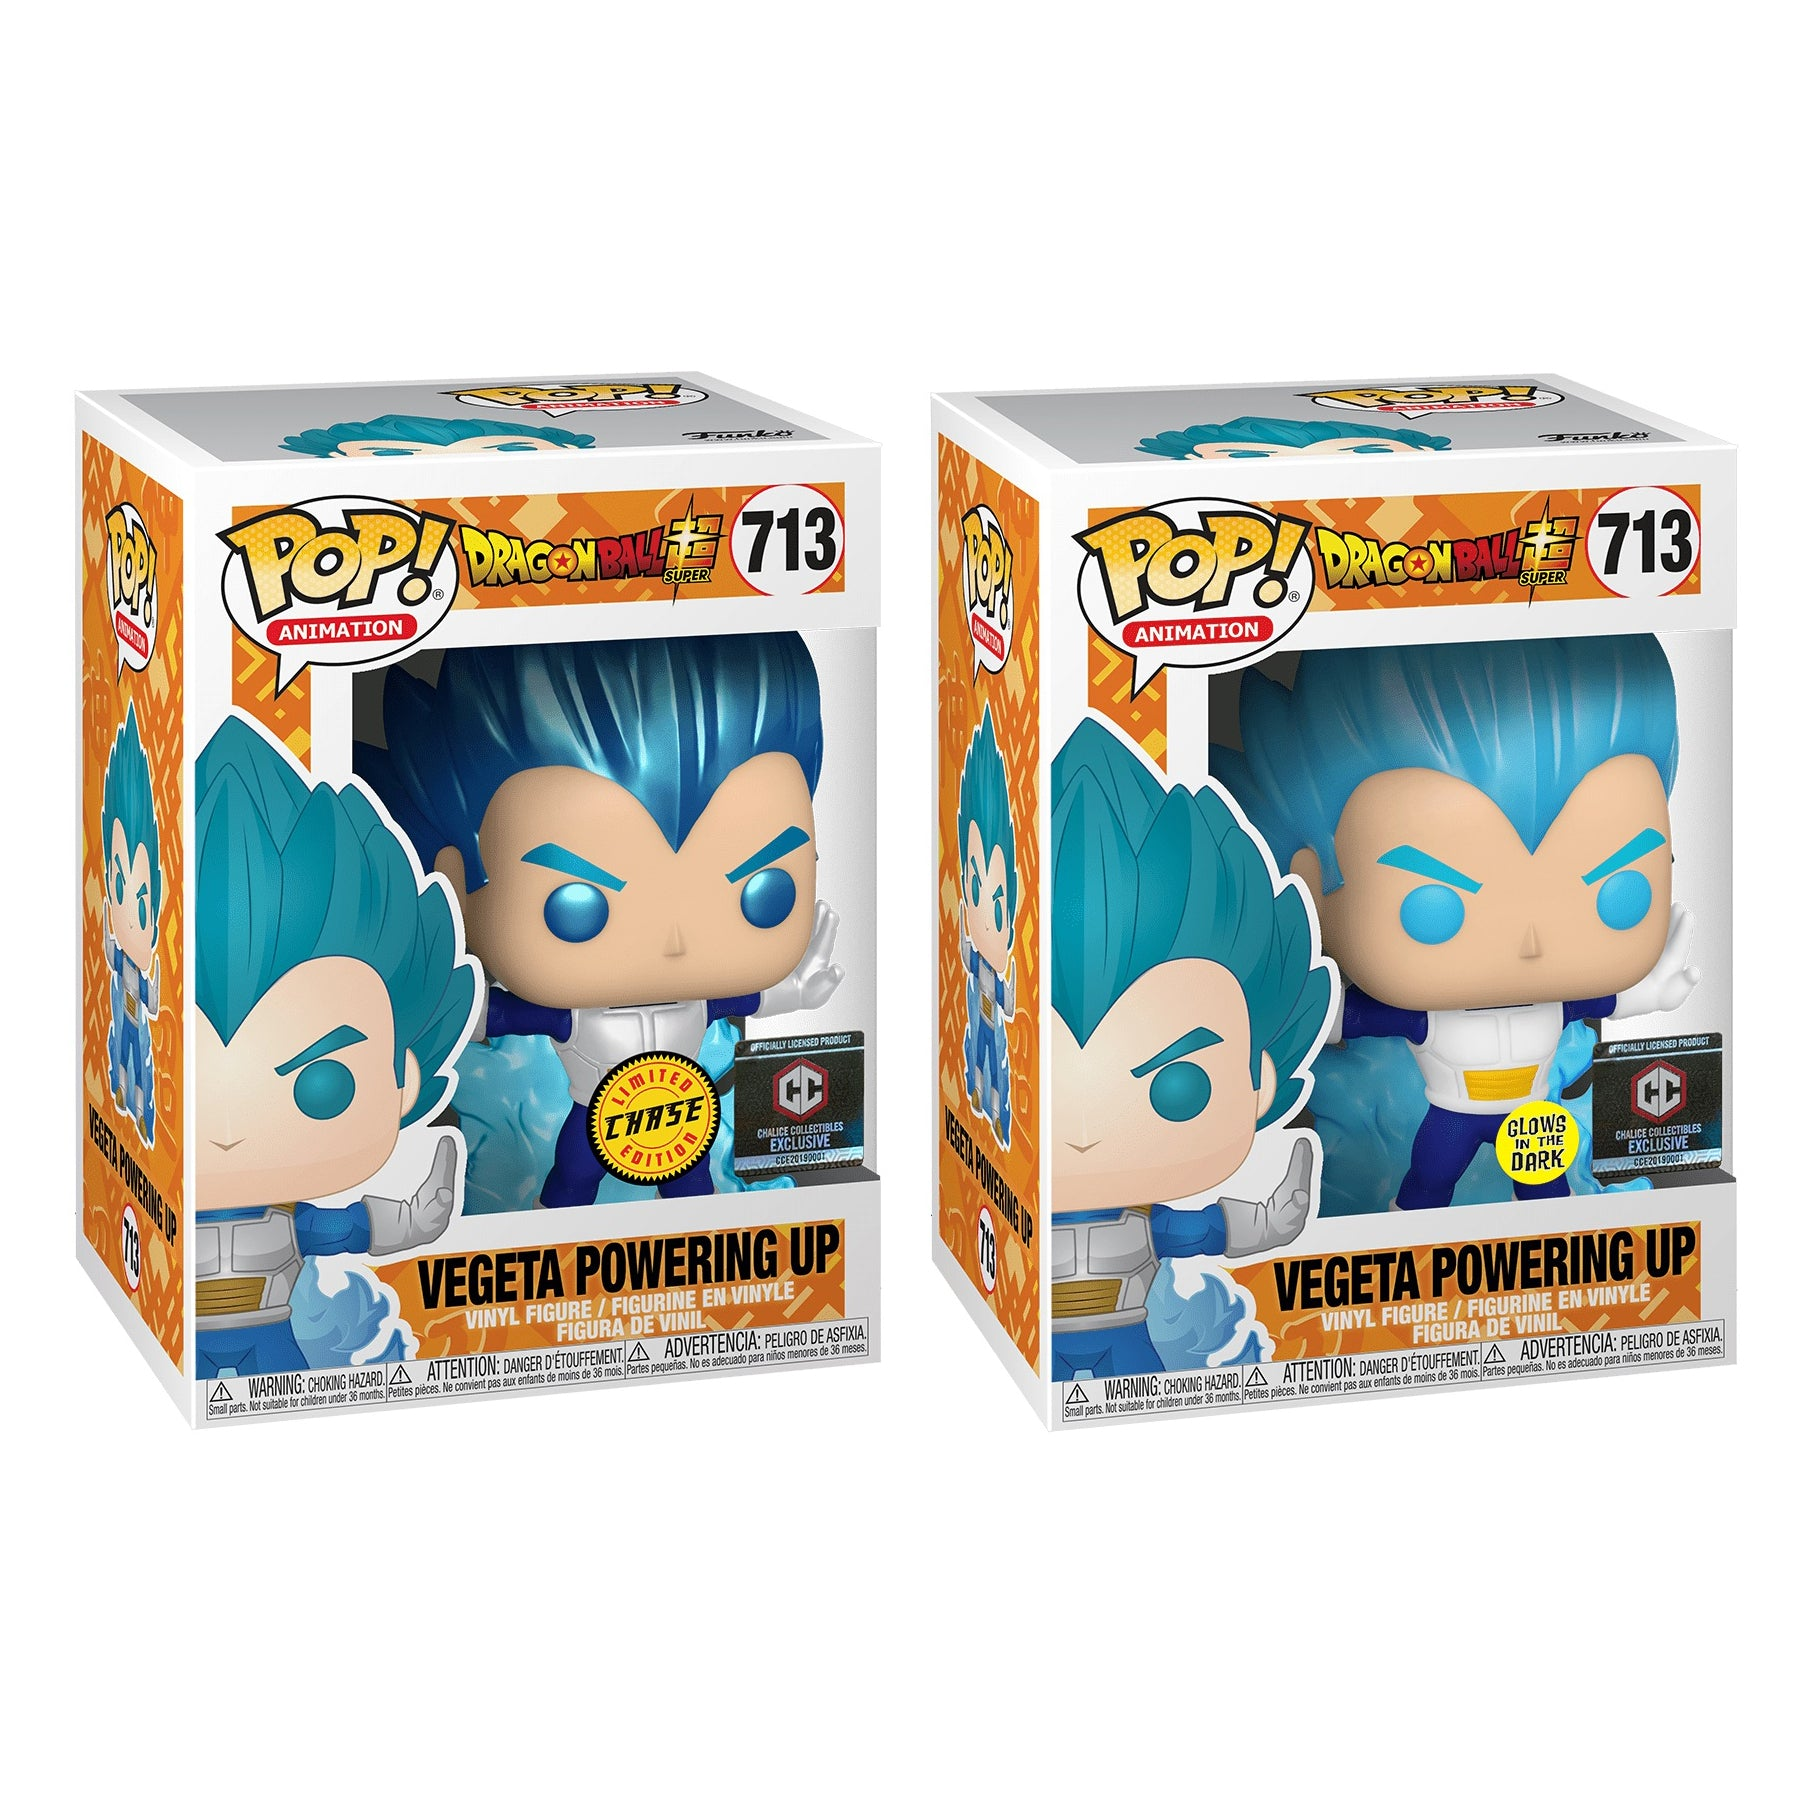 Dragon Ball Super Vegeta Powering Up Exclusive Chase Bundle (2 Figures)